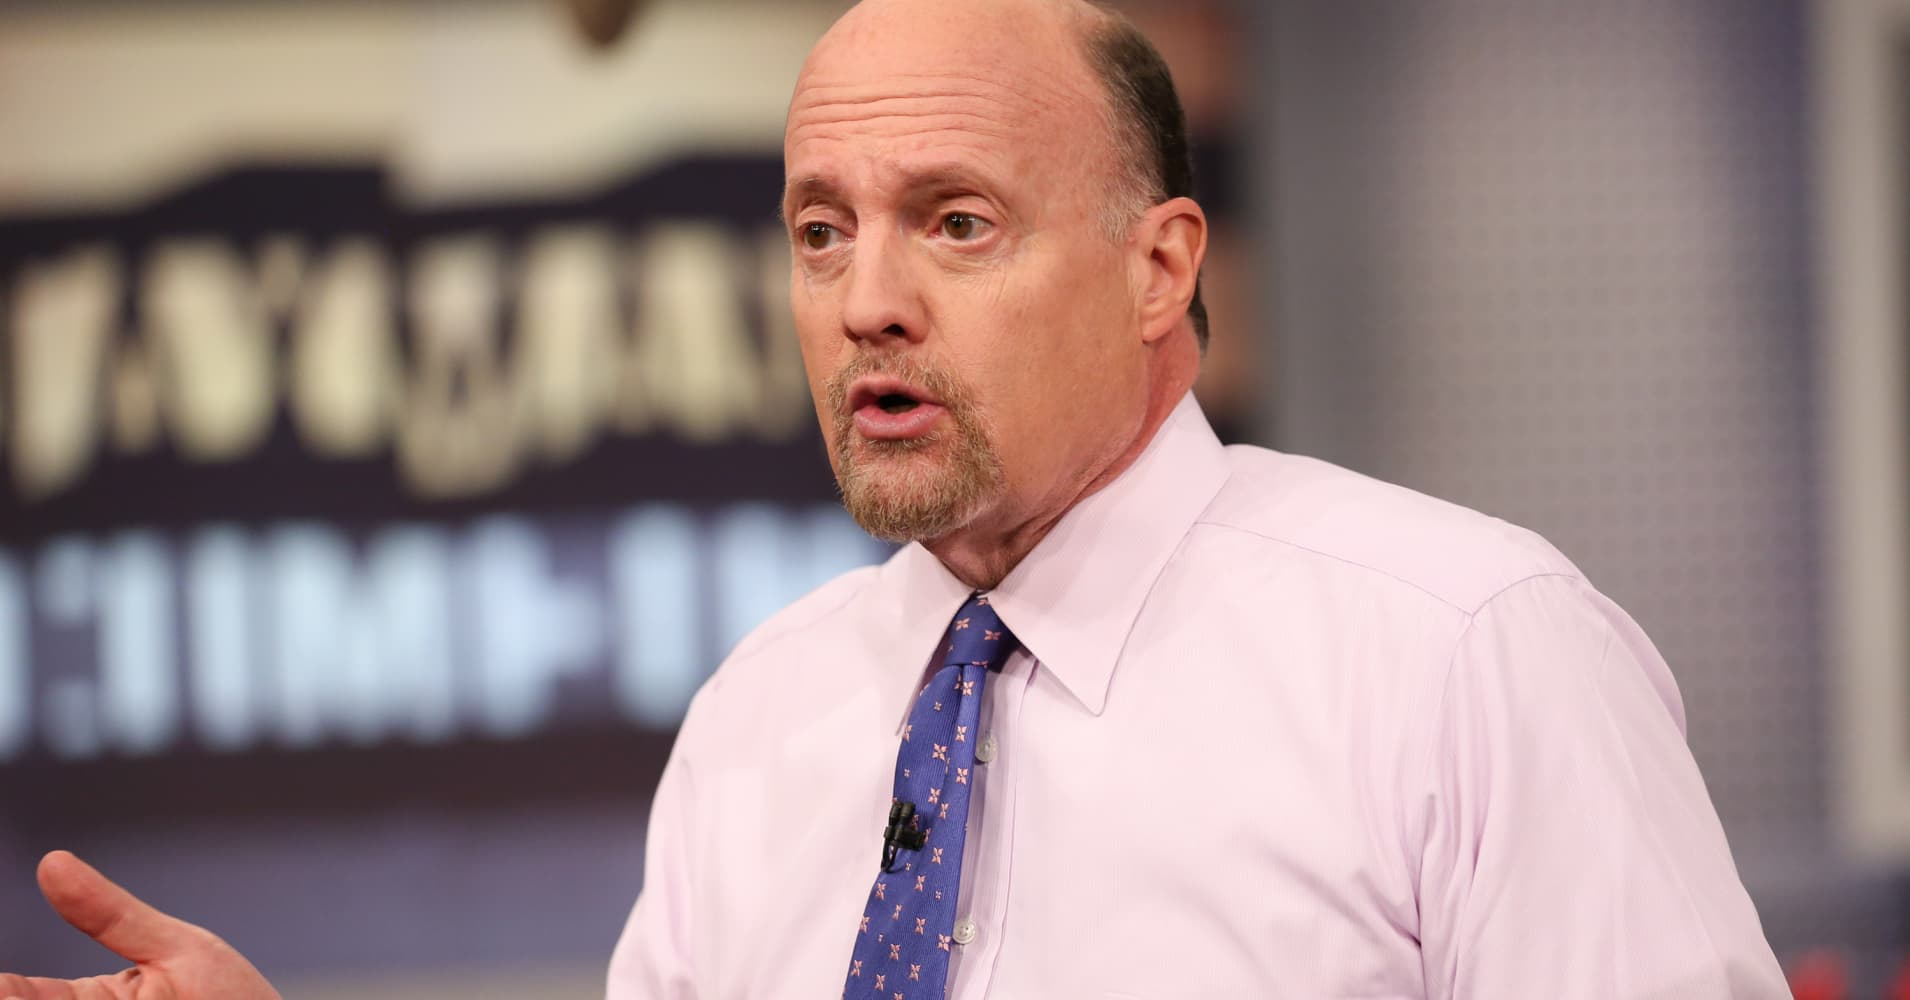 Cramer Remix: The best investment may be hidden inside your home